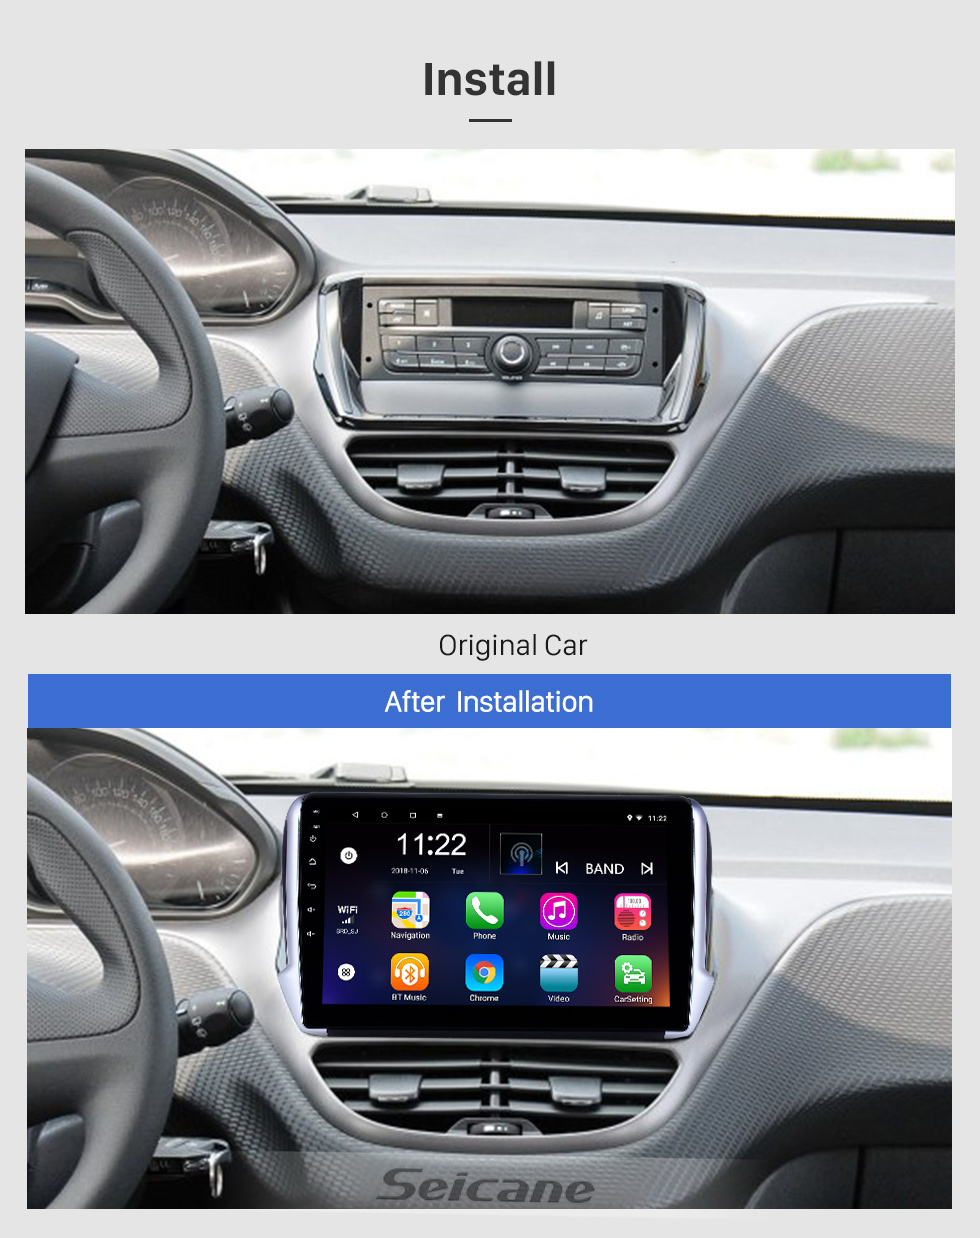 Seicane 10.1 inch Android 8.1 GPS Navigation Radio for 2014-2016 Peugeot 2008 with HD Touchscreen Bluetooth USB WIFI AUX support Carplay SWC TPMS